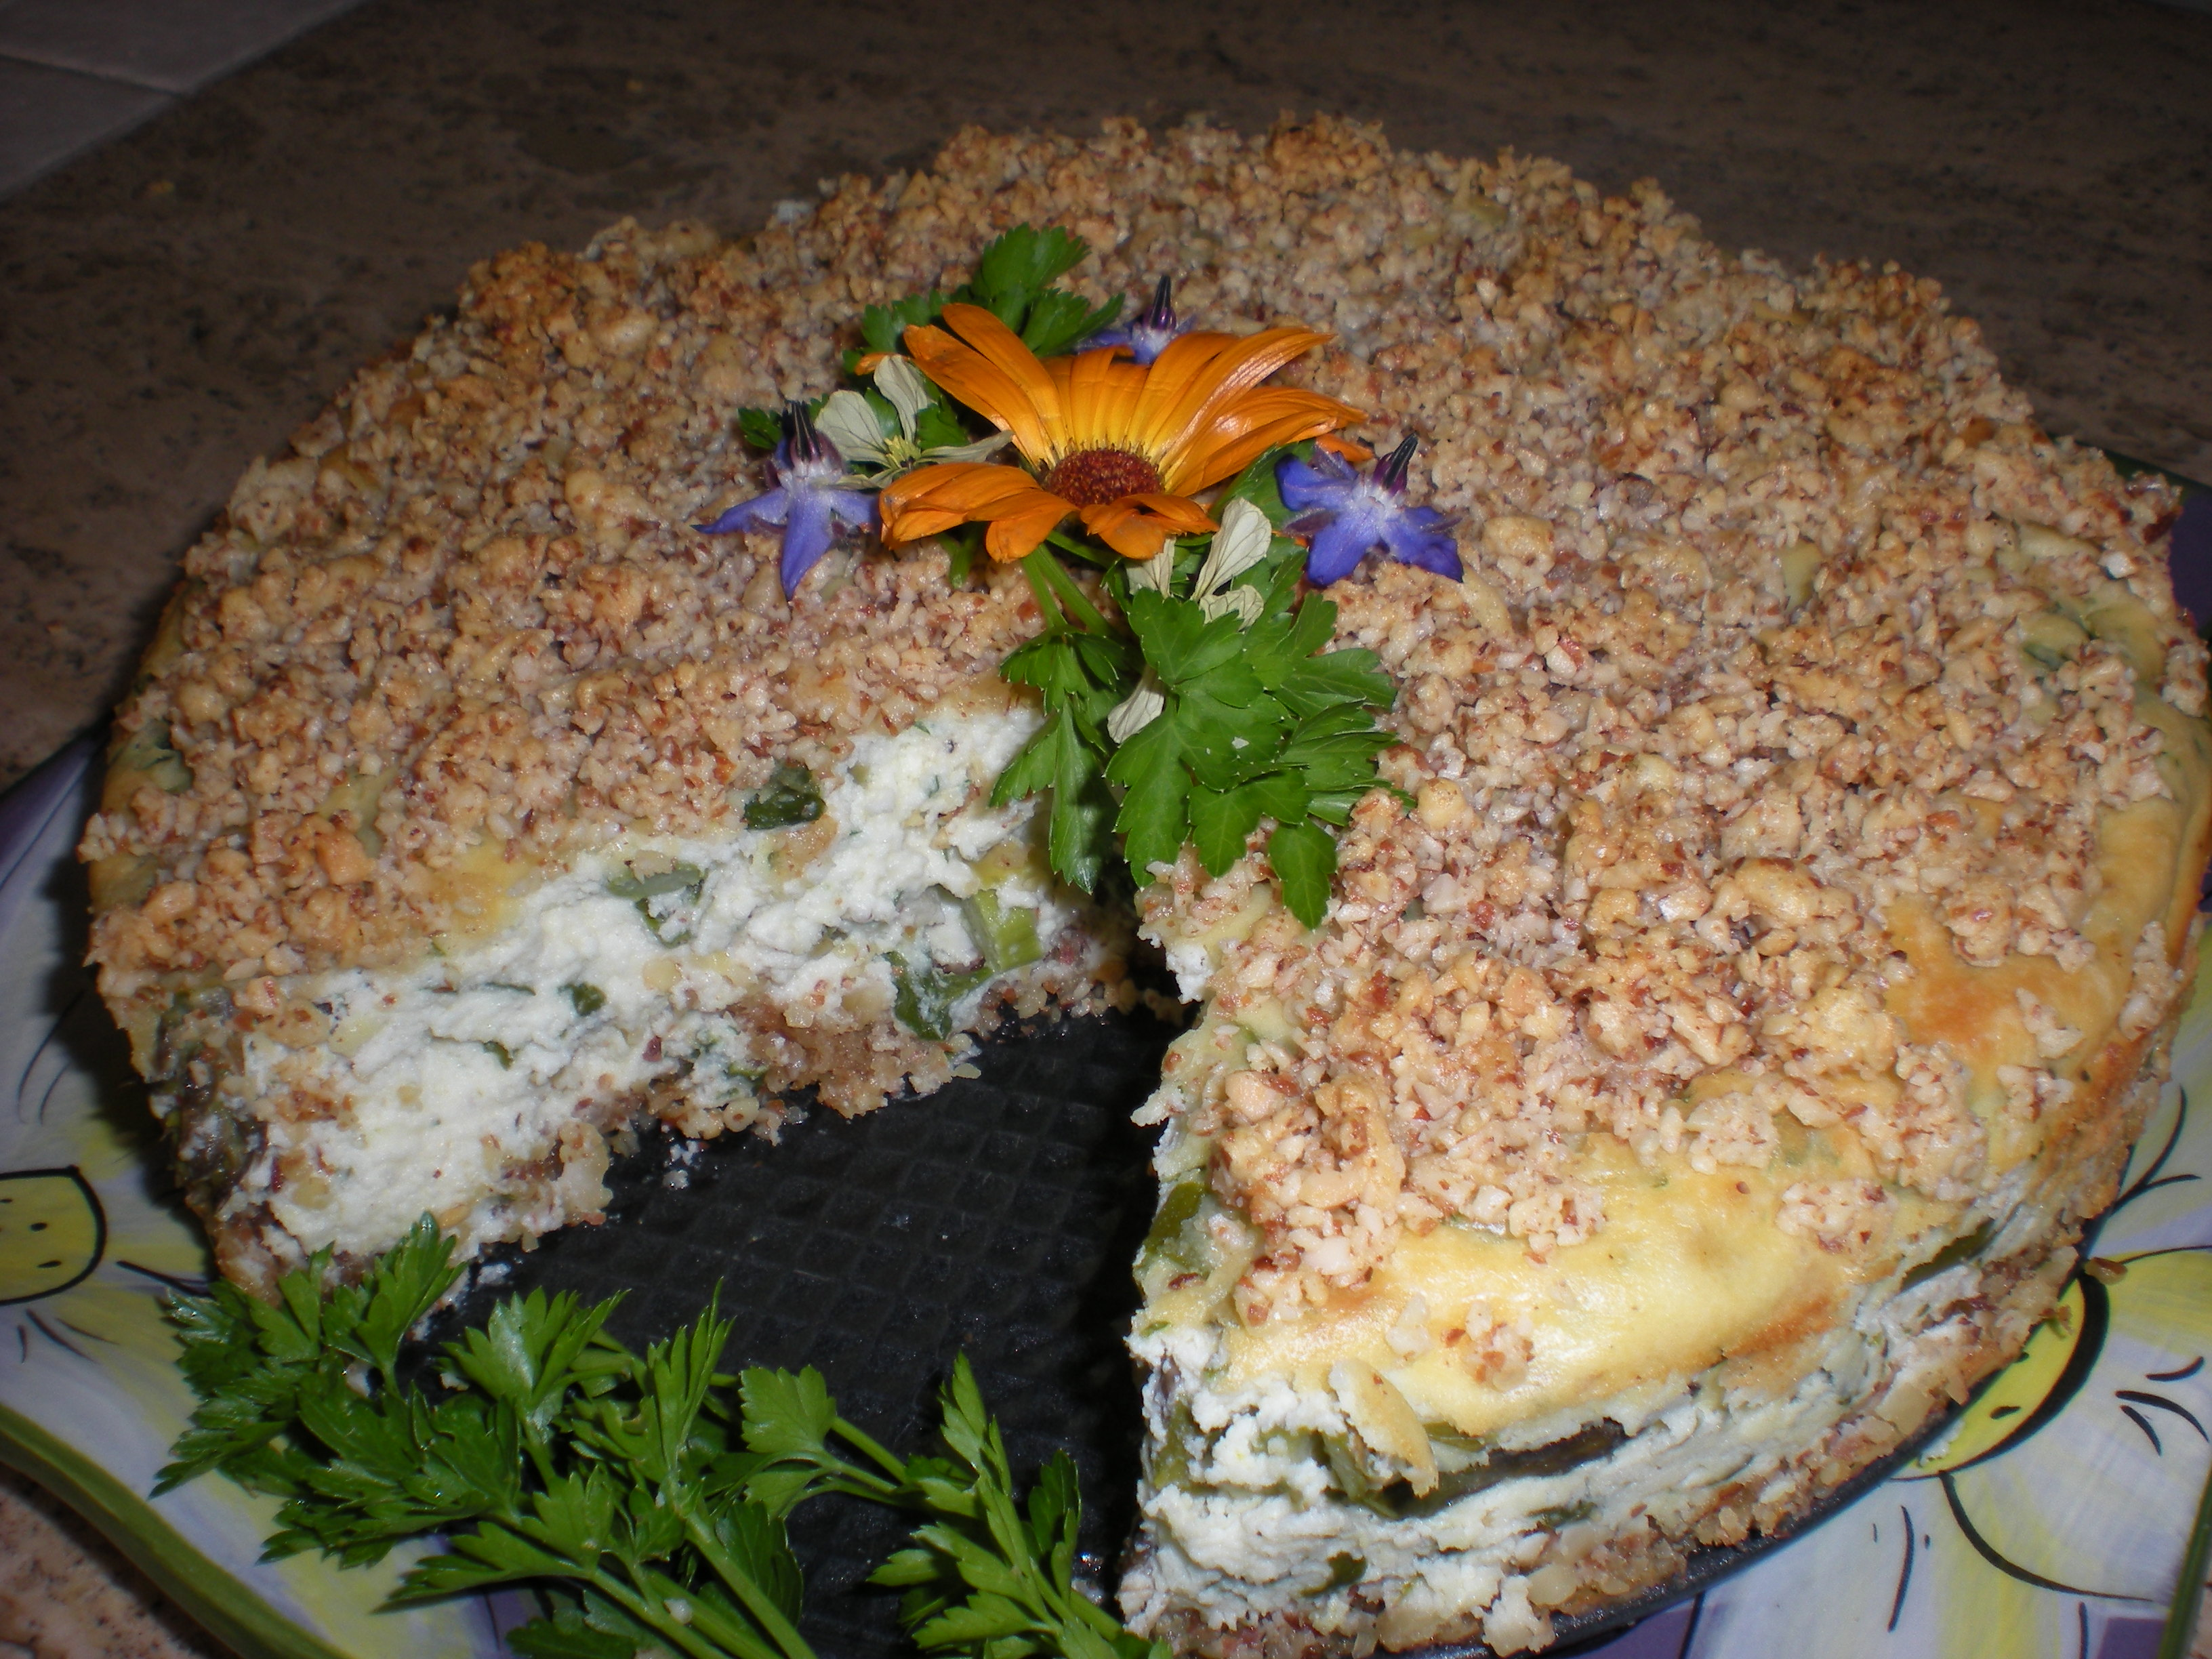 Savory Asparagus Ricotta Cheesecake with Almond Swiss Cheese Crust and Topping.